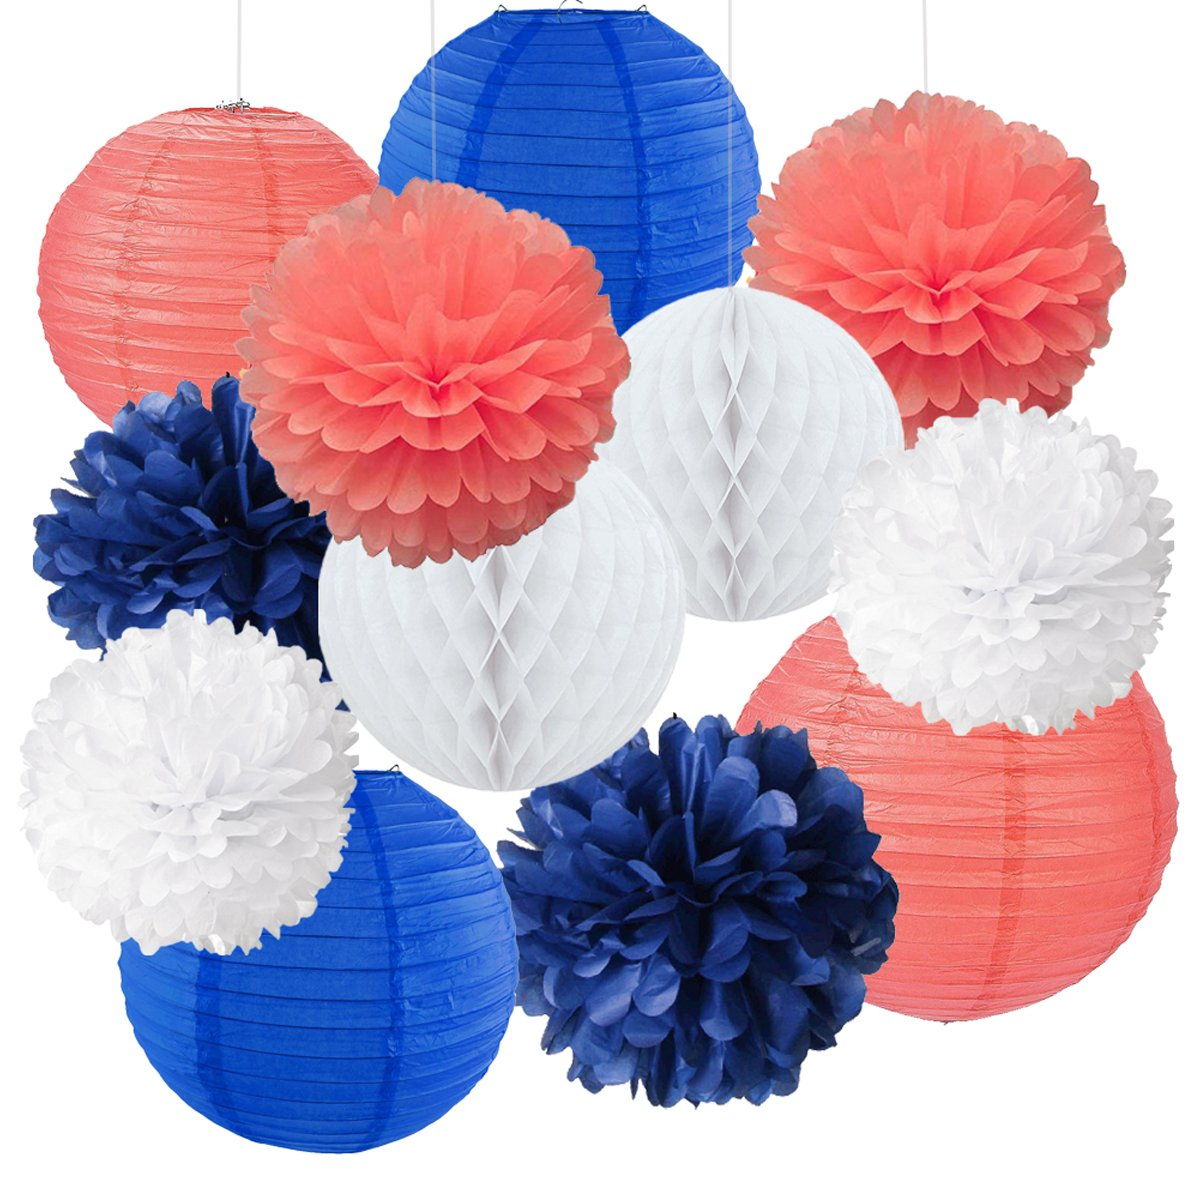 12pcs Mixed Royal Blue Coral White Party Tissue Pom Poms Hanging Paper Lantern Honeycomb Balls Nautical Themed Vintage Wedding Birthday Shower Party Nursery Decoration DreammadeStudio